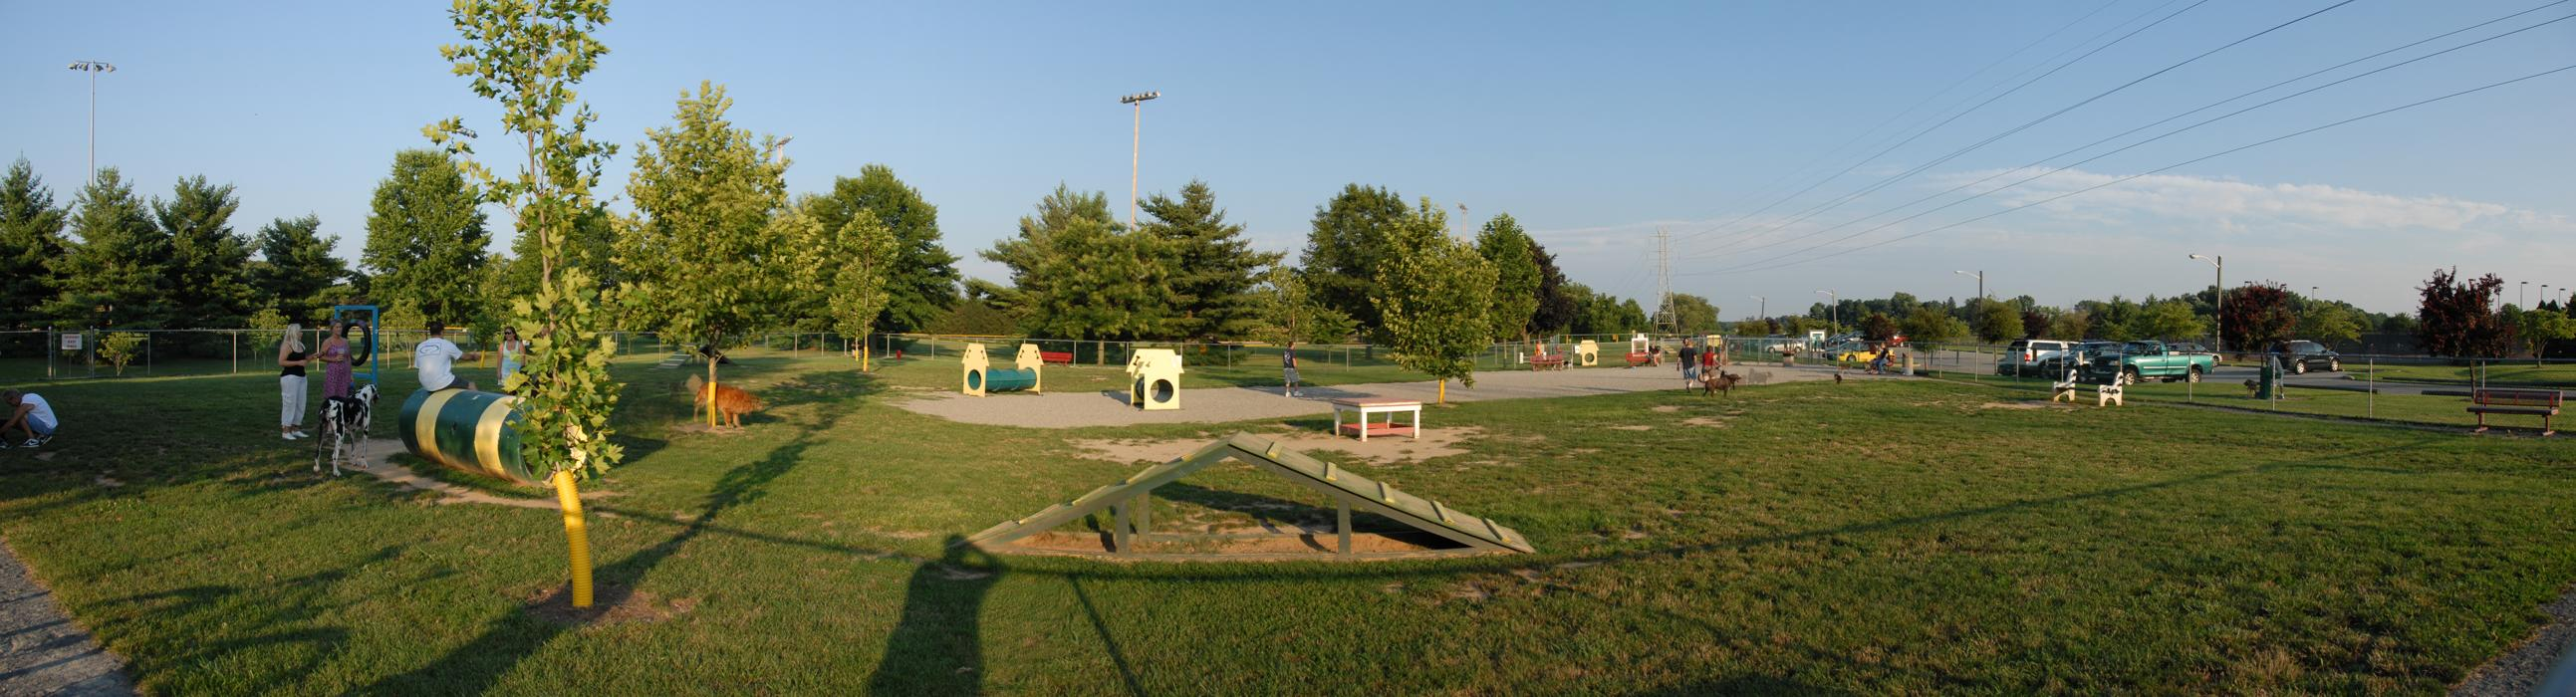 panoramic, blue sky and, dog park, dogs, grass, obstacle, people, pets, shadow, trees